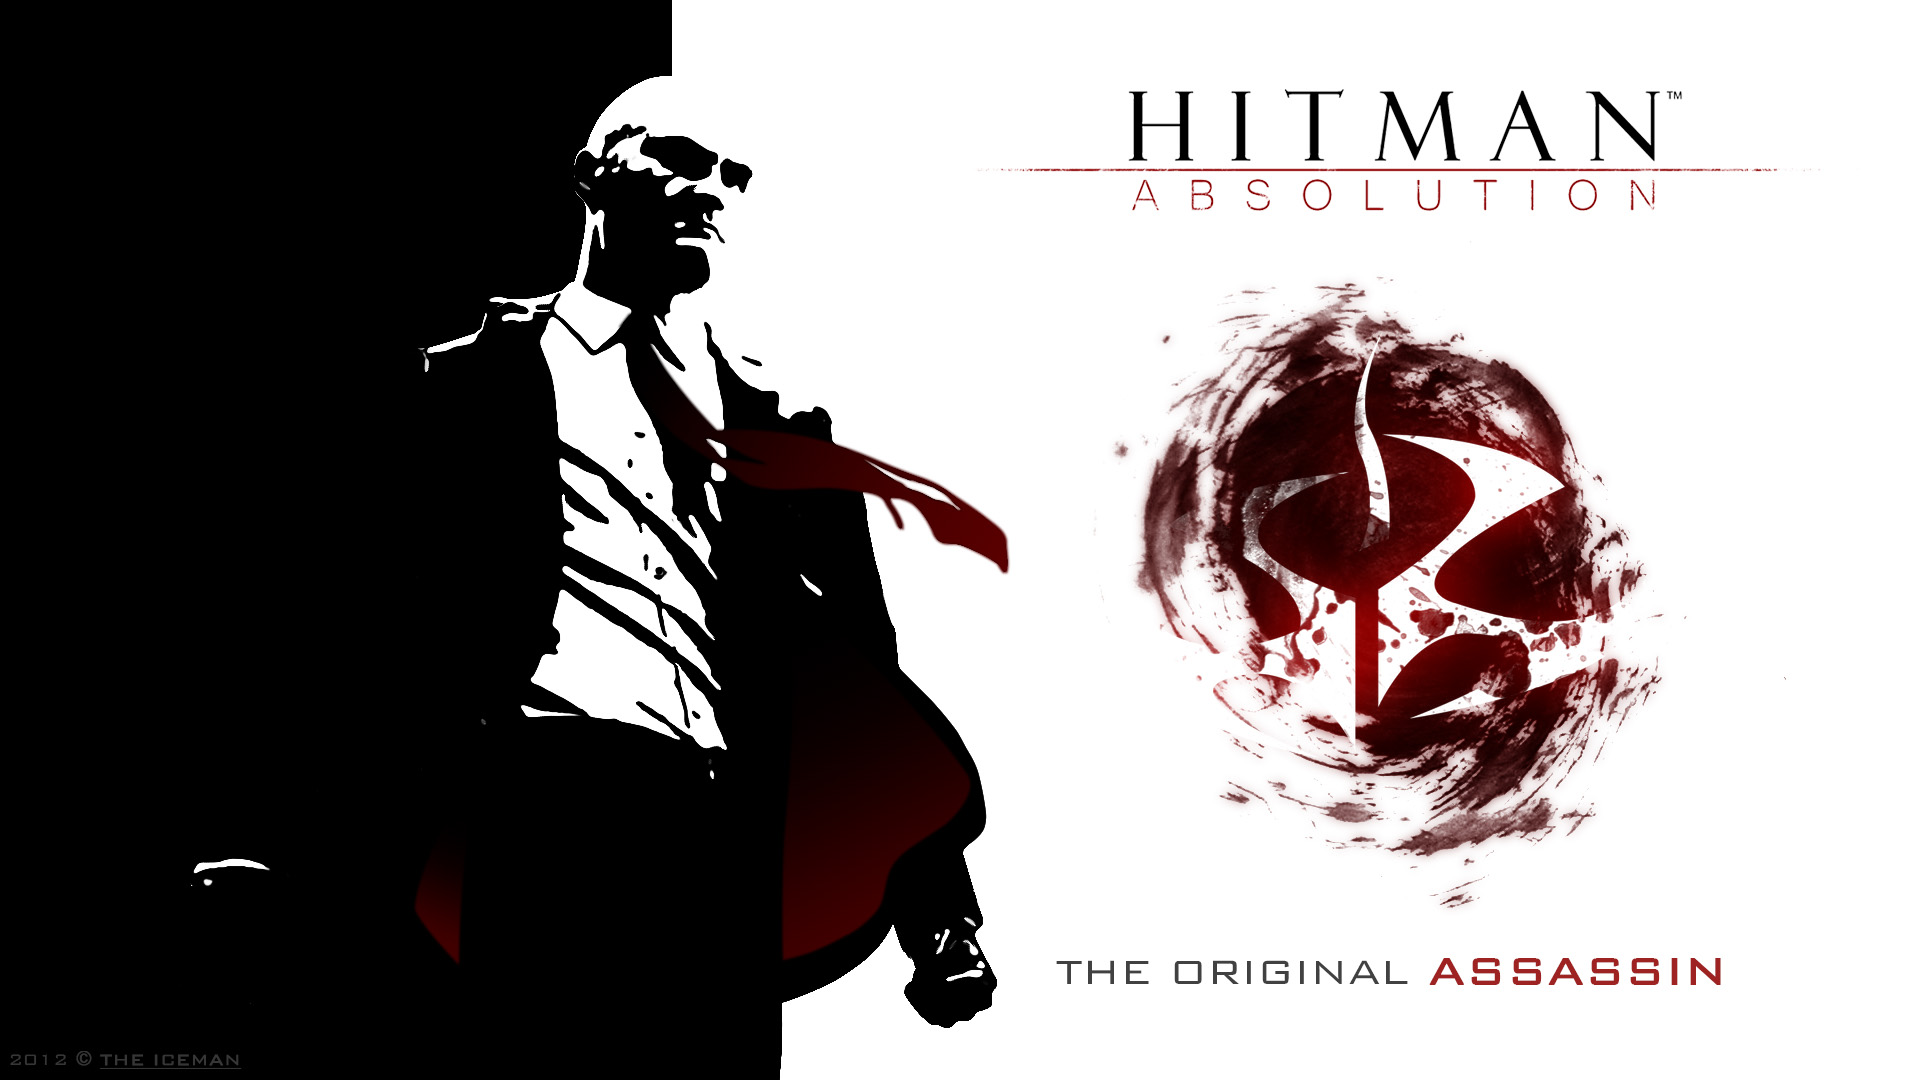 Hitman Absolution Wallpaper Agent 47 Full Hd By Theicemanpl On